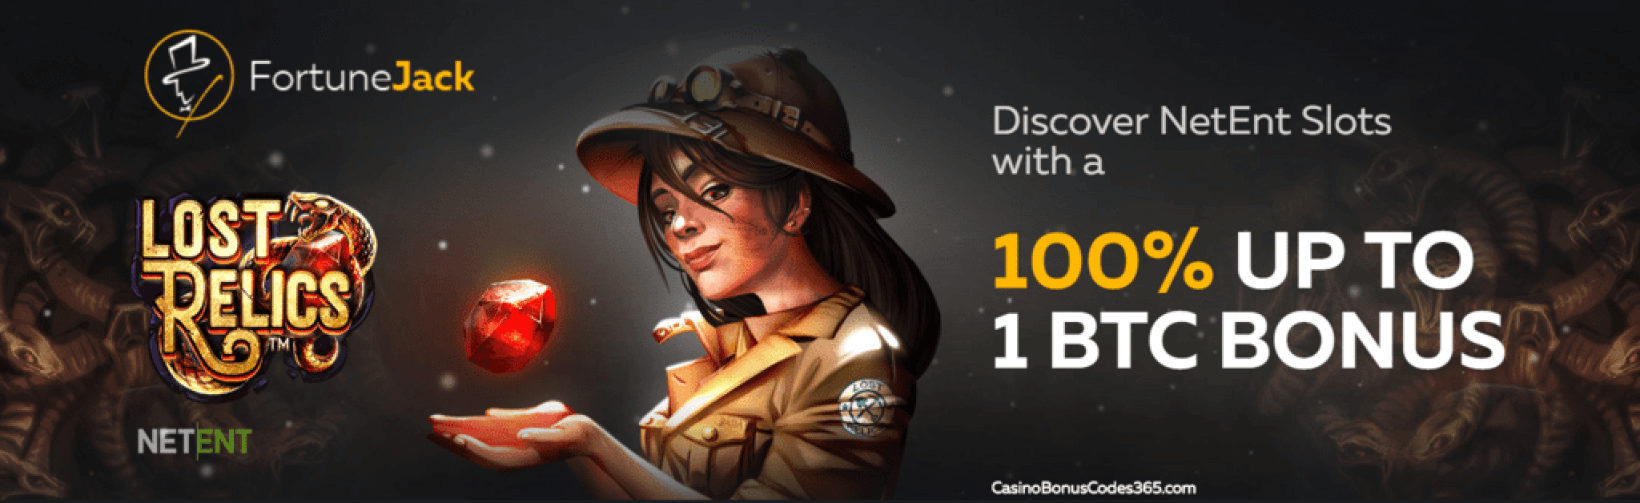 FortuneJack Casino NetEnt Games 100% Match Bonus up to 1BTC